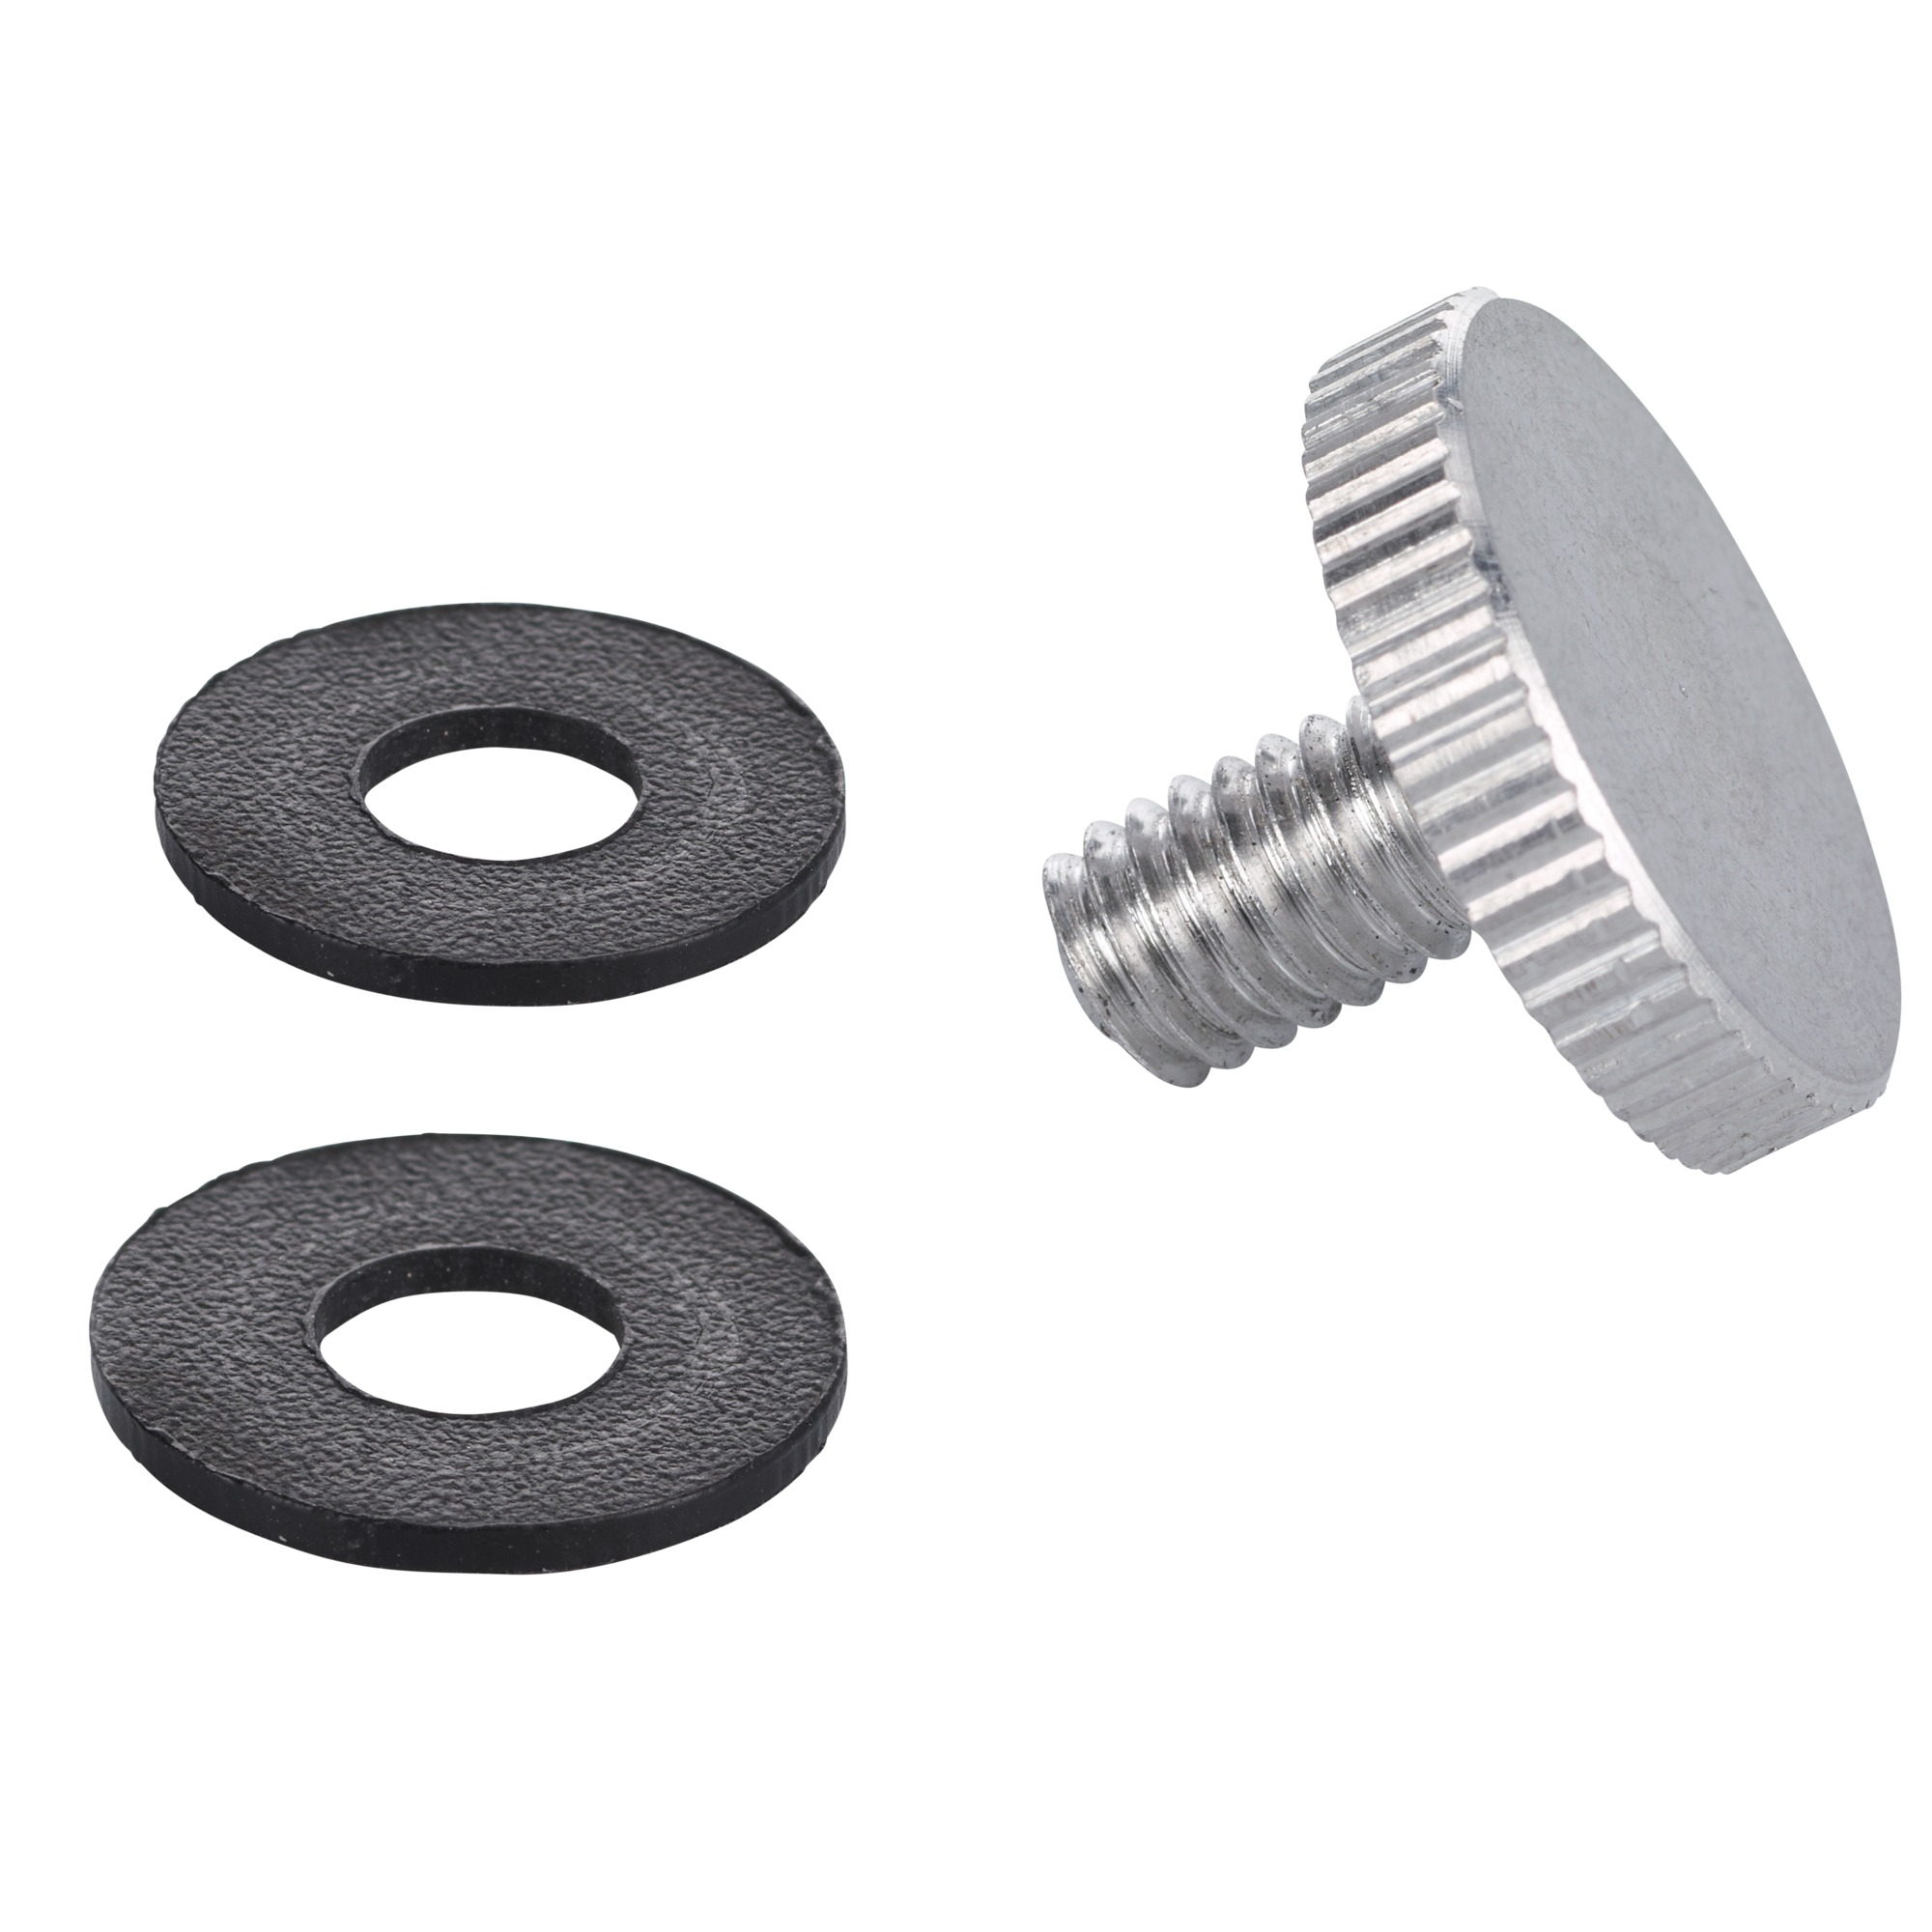 SCOTT 350 Kid Screw Kit